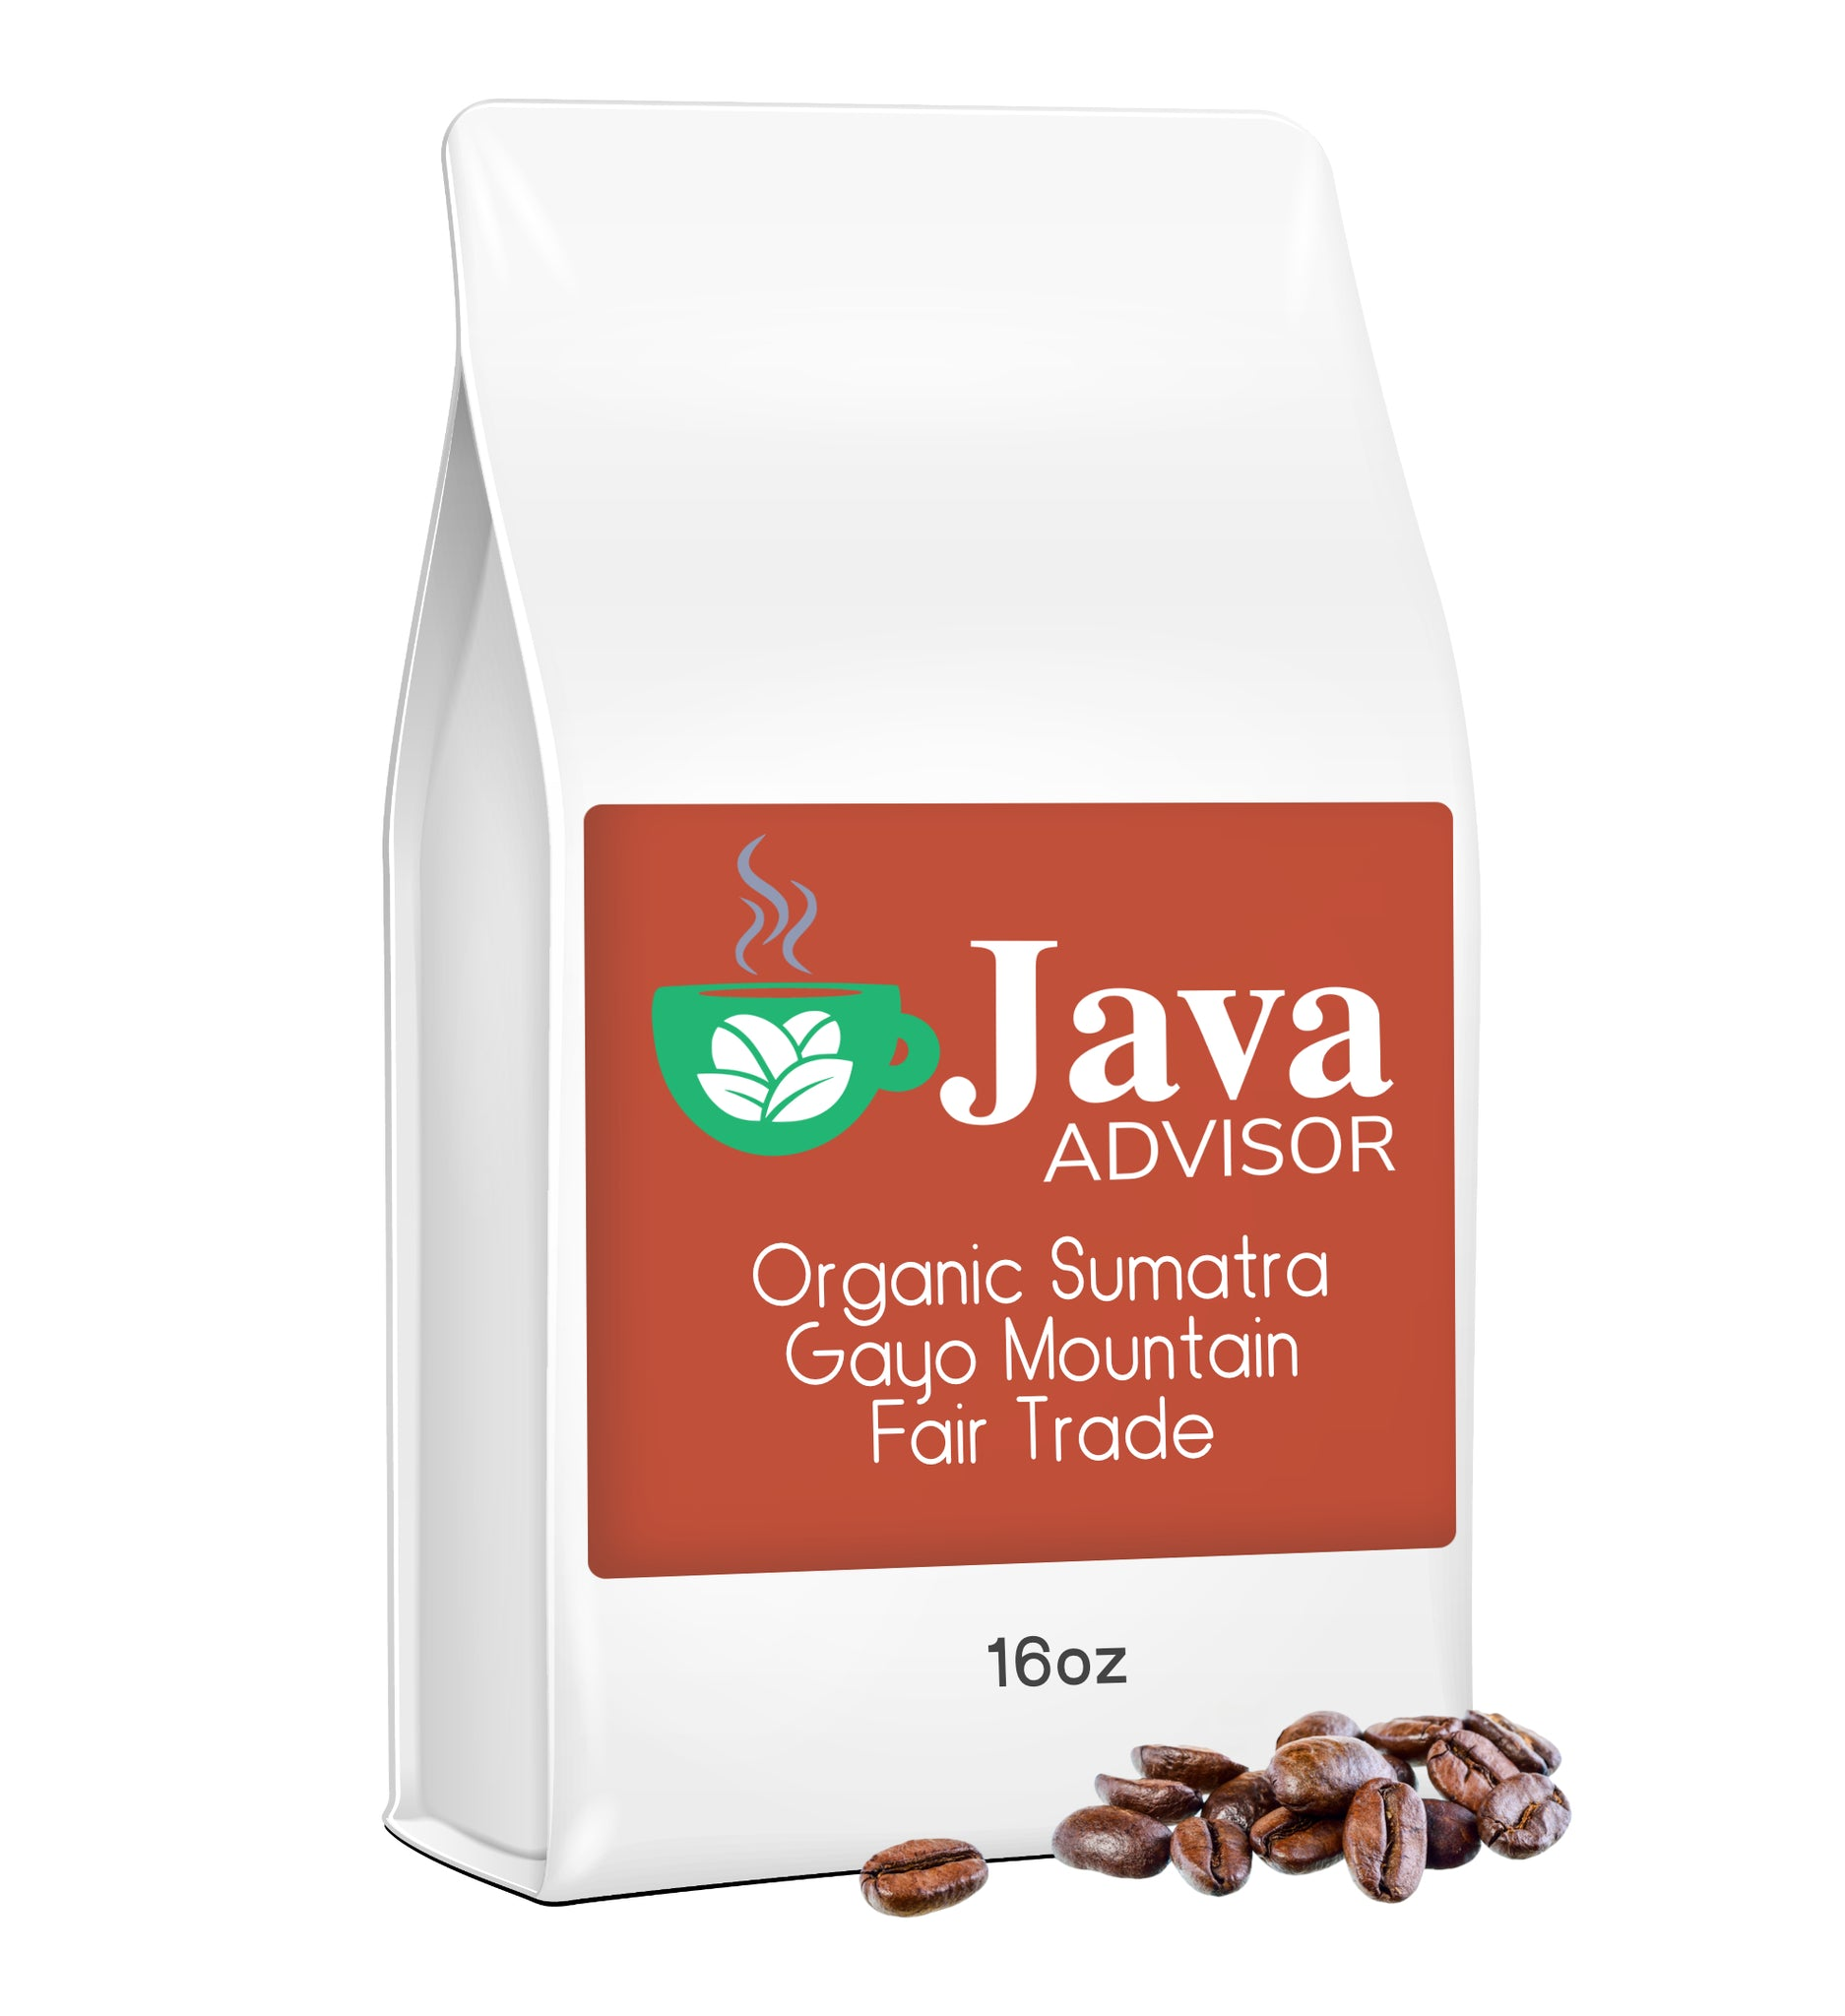 Organic Sumatra Gayo Mountain Fair Trade